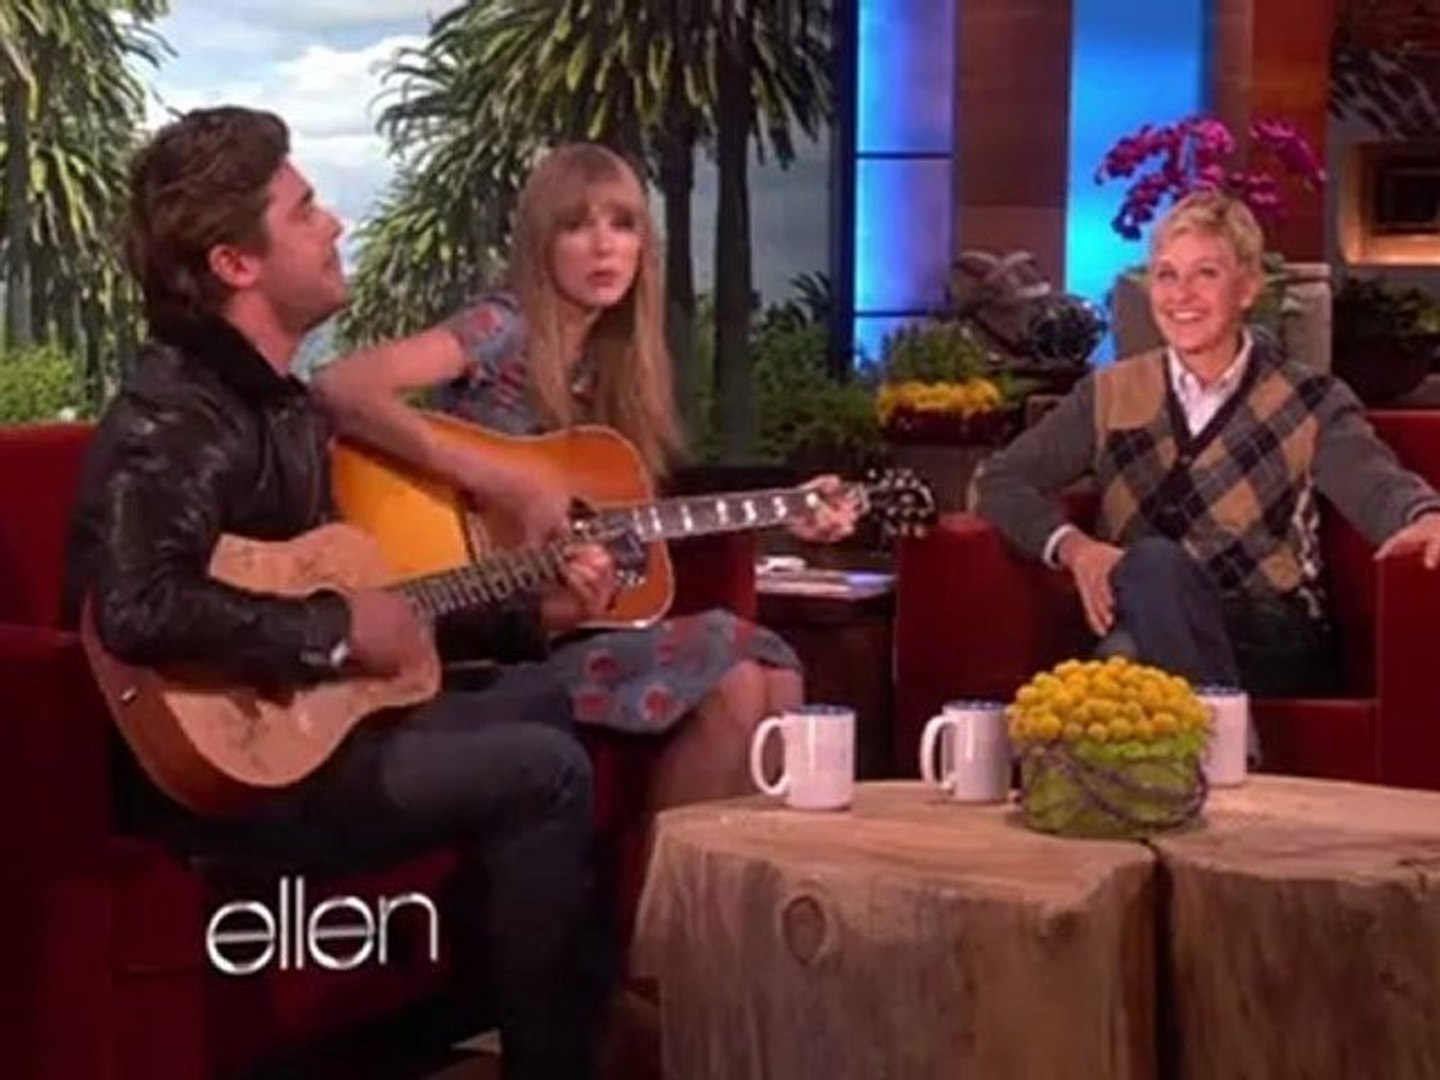 Taylor Swift and Zac Efron-Pumped Up Kicks (Cover)